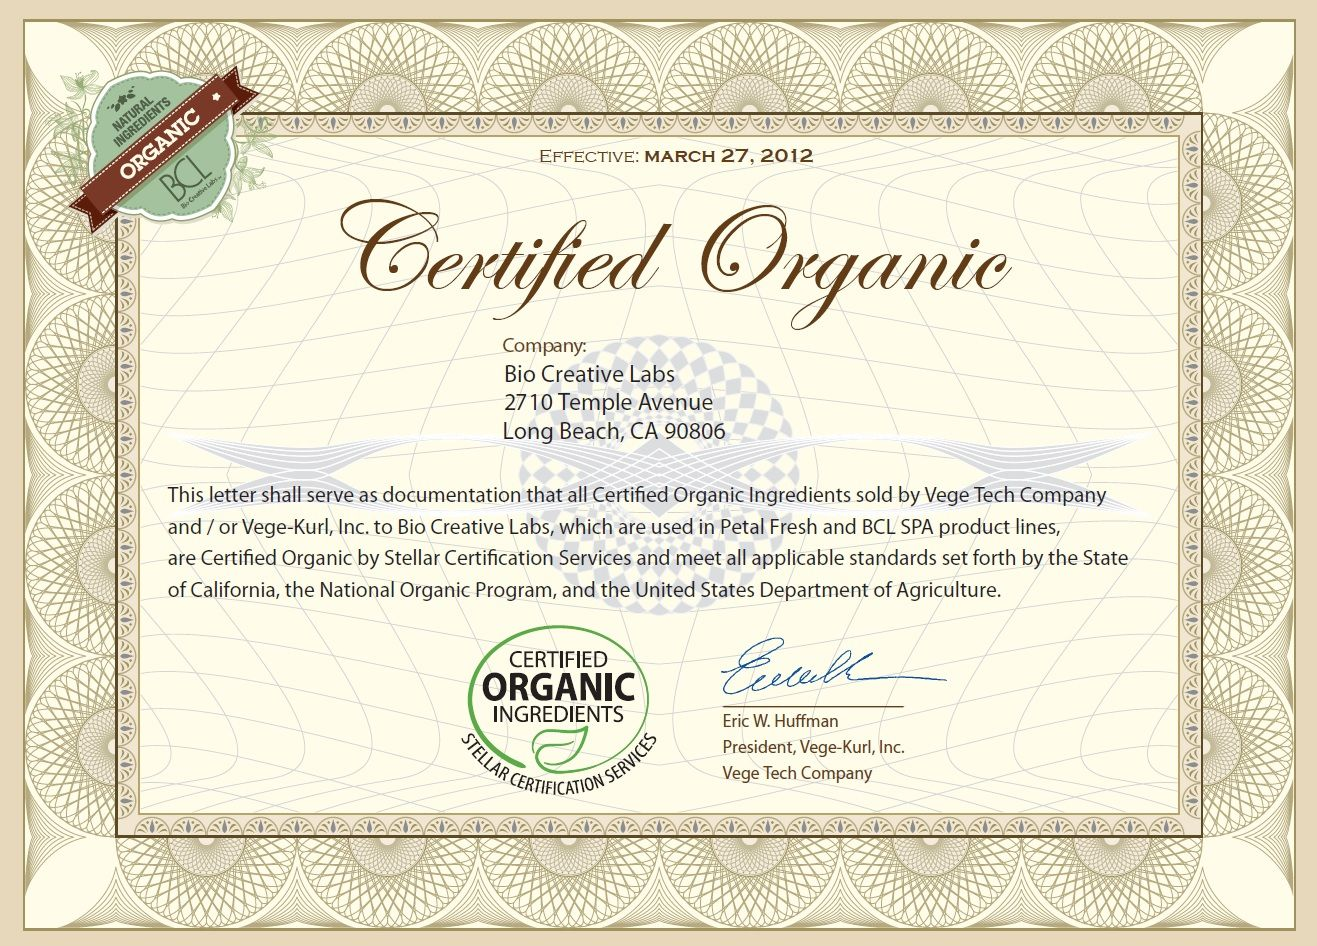 Bcl spa products are using certified organic ingredients certified bcl spa products are using certified organic ingredients certified by stellar certification services accredited by xflitez Gallery